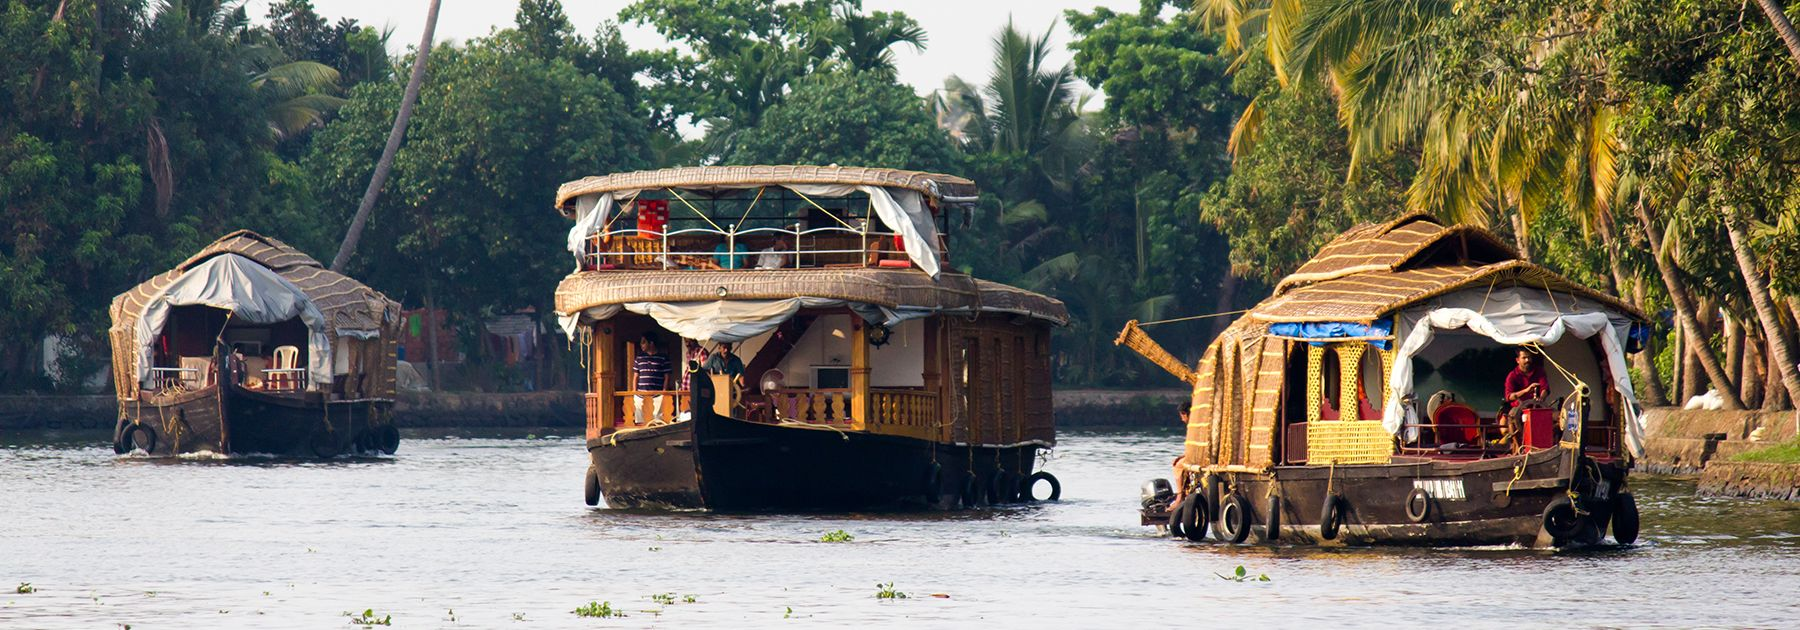 Houseboats in Alleppey, Kerala. (Saad Faruque, licensed under CC BY-SA 2.0)